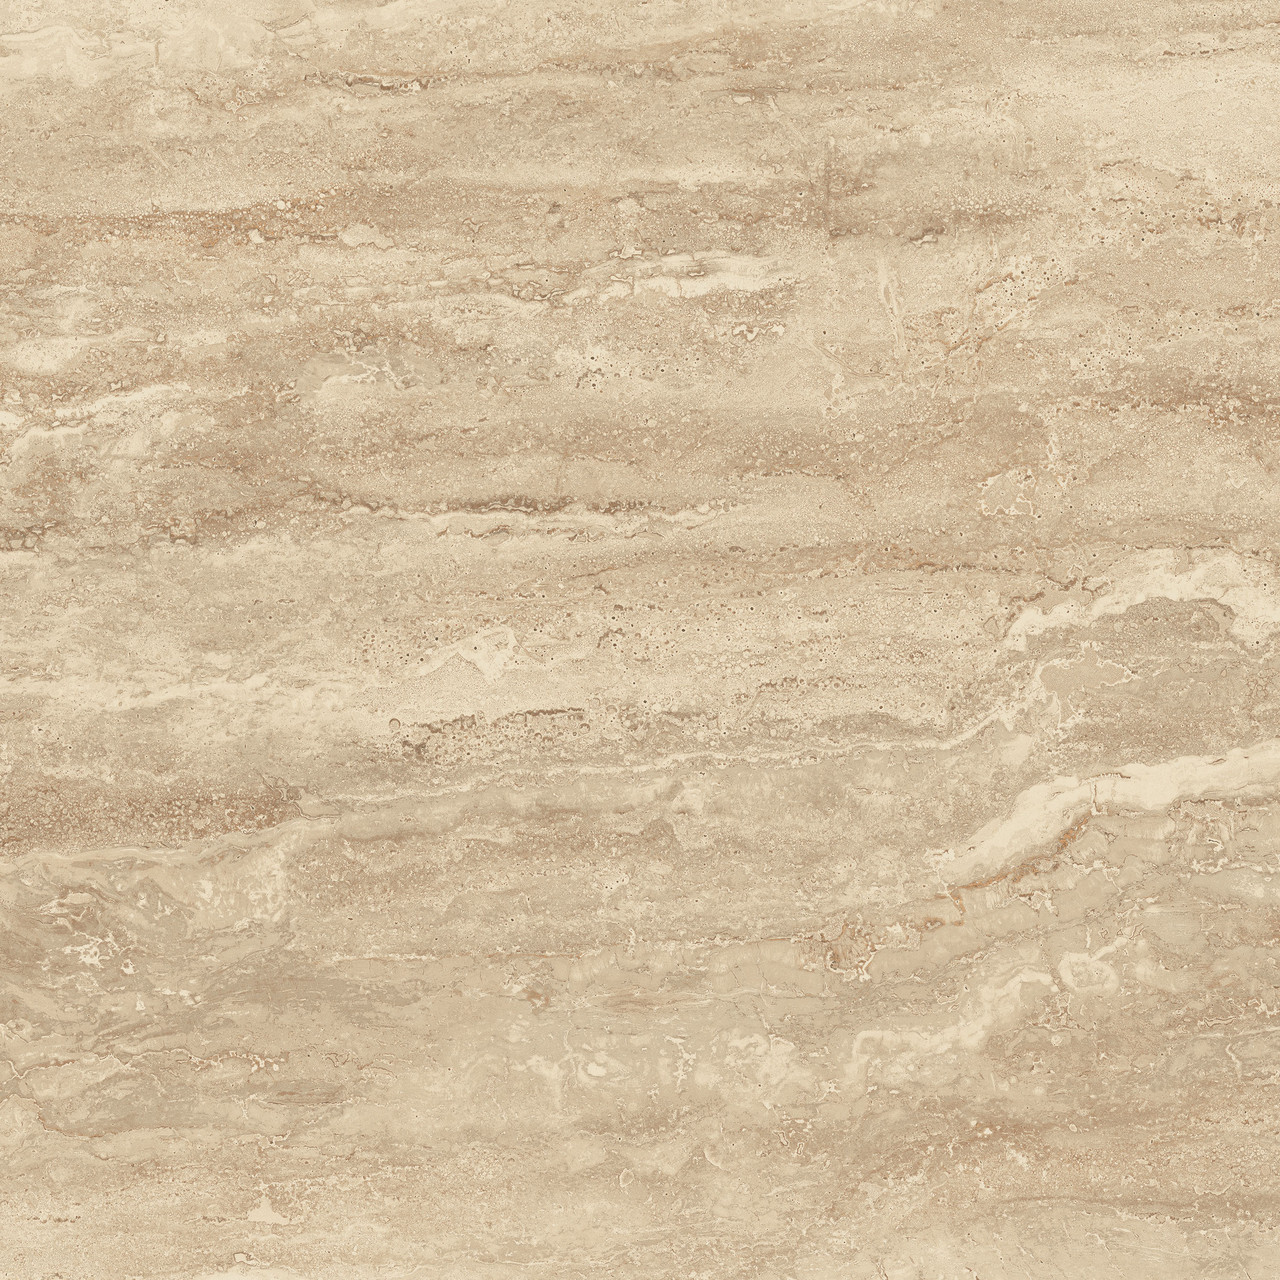 Плита керамогранит 600*600 мм travertine brown m Уп. 1,44м2/4шт